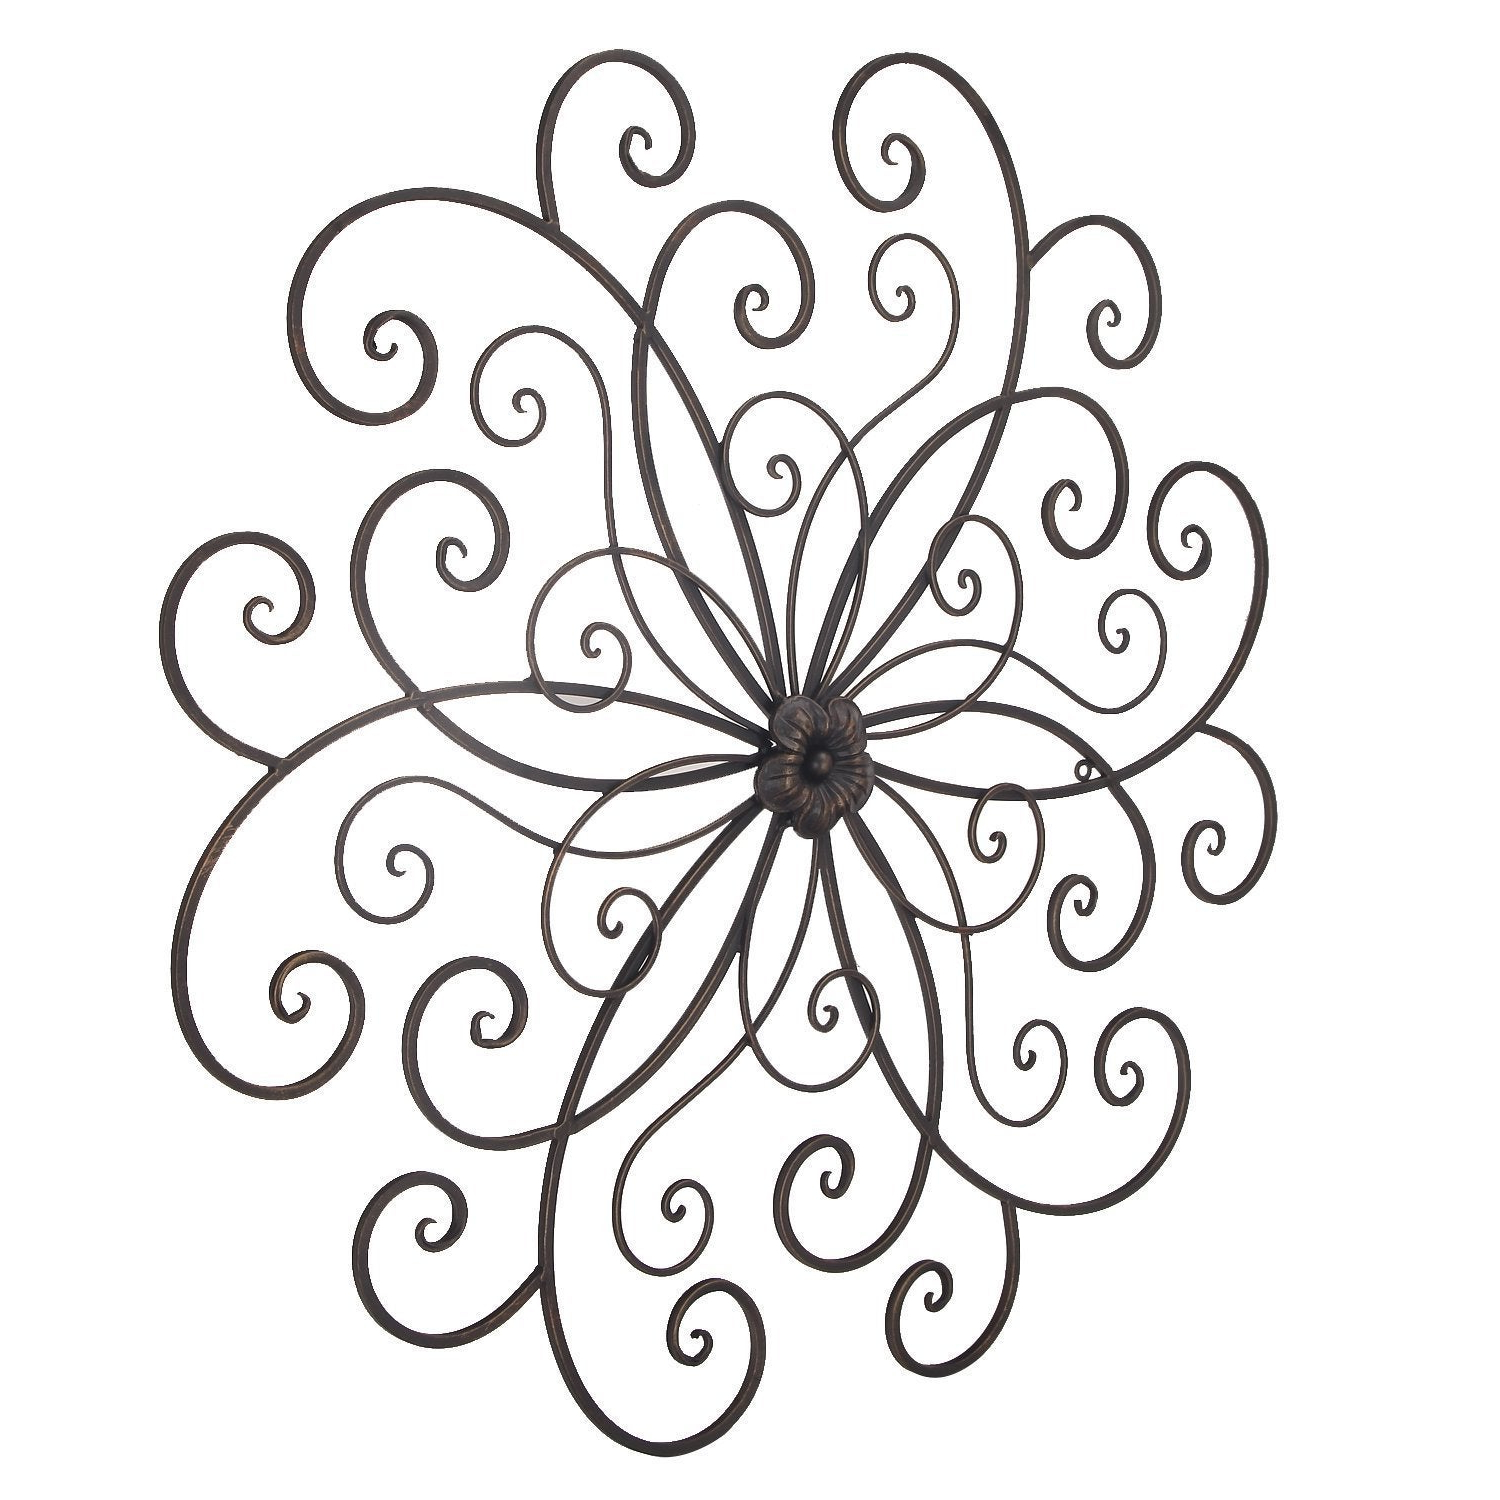 2019 Shop Adeco Bronze Flower Urban Design Metal Wall Decor For Nature Throughout Flower Urban Design Metal Wall Decor (View 1 of 20)